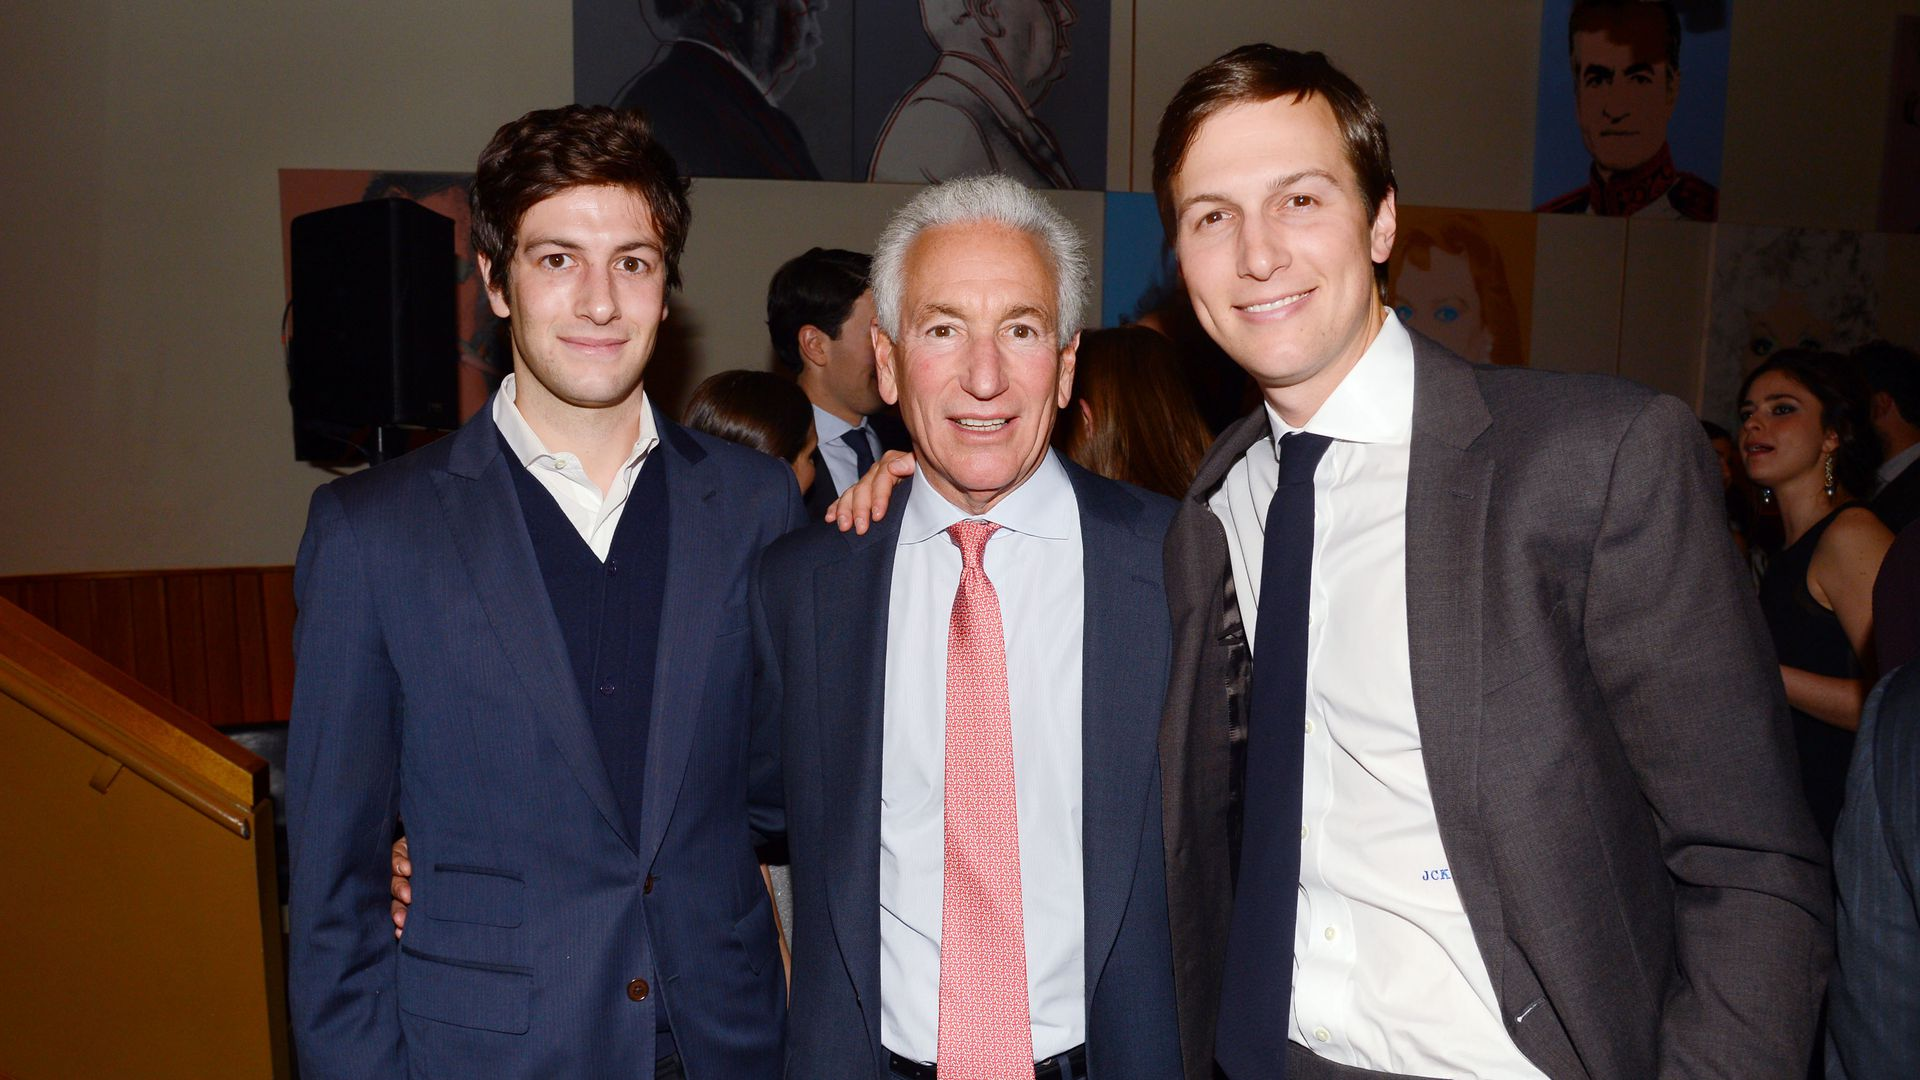 Kushner family